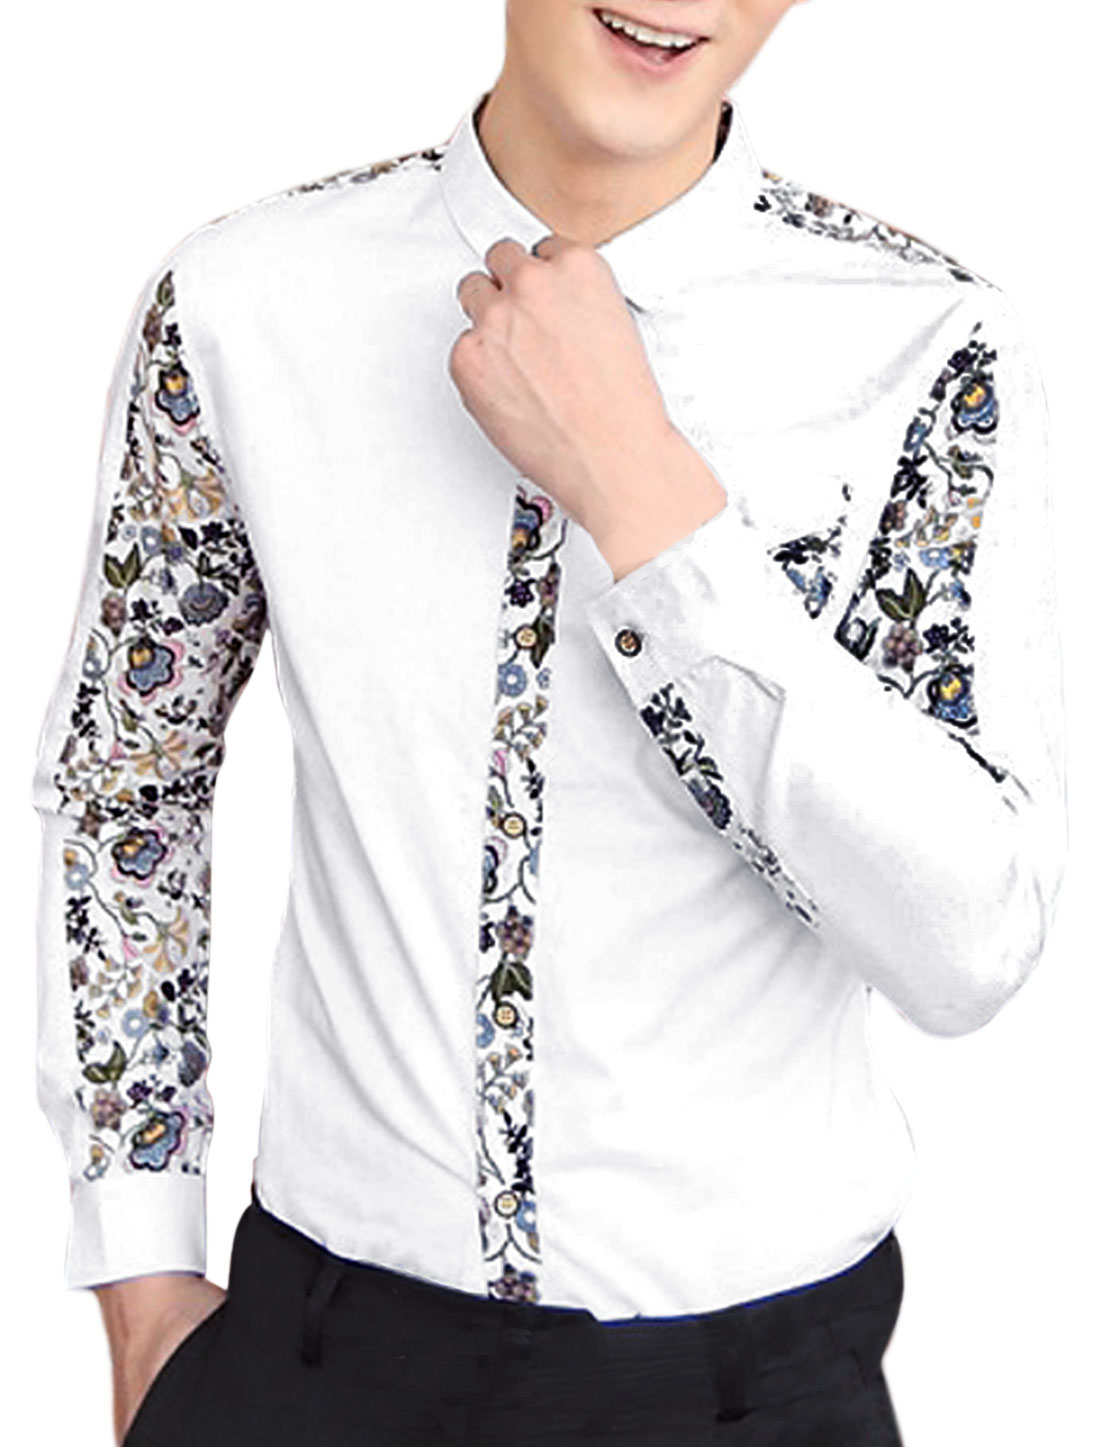 Men Point Collar Button Down Floral Prints Panel White Shirt M